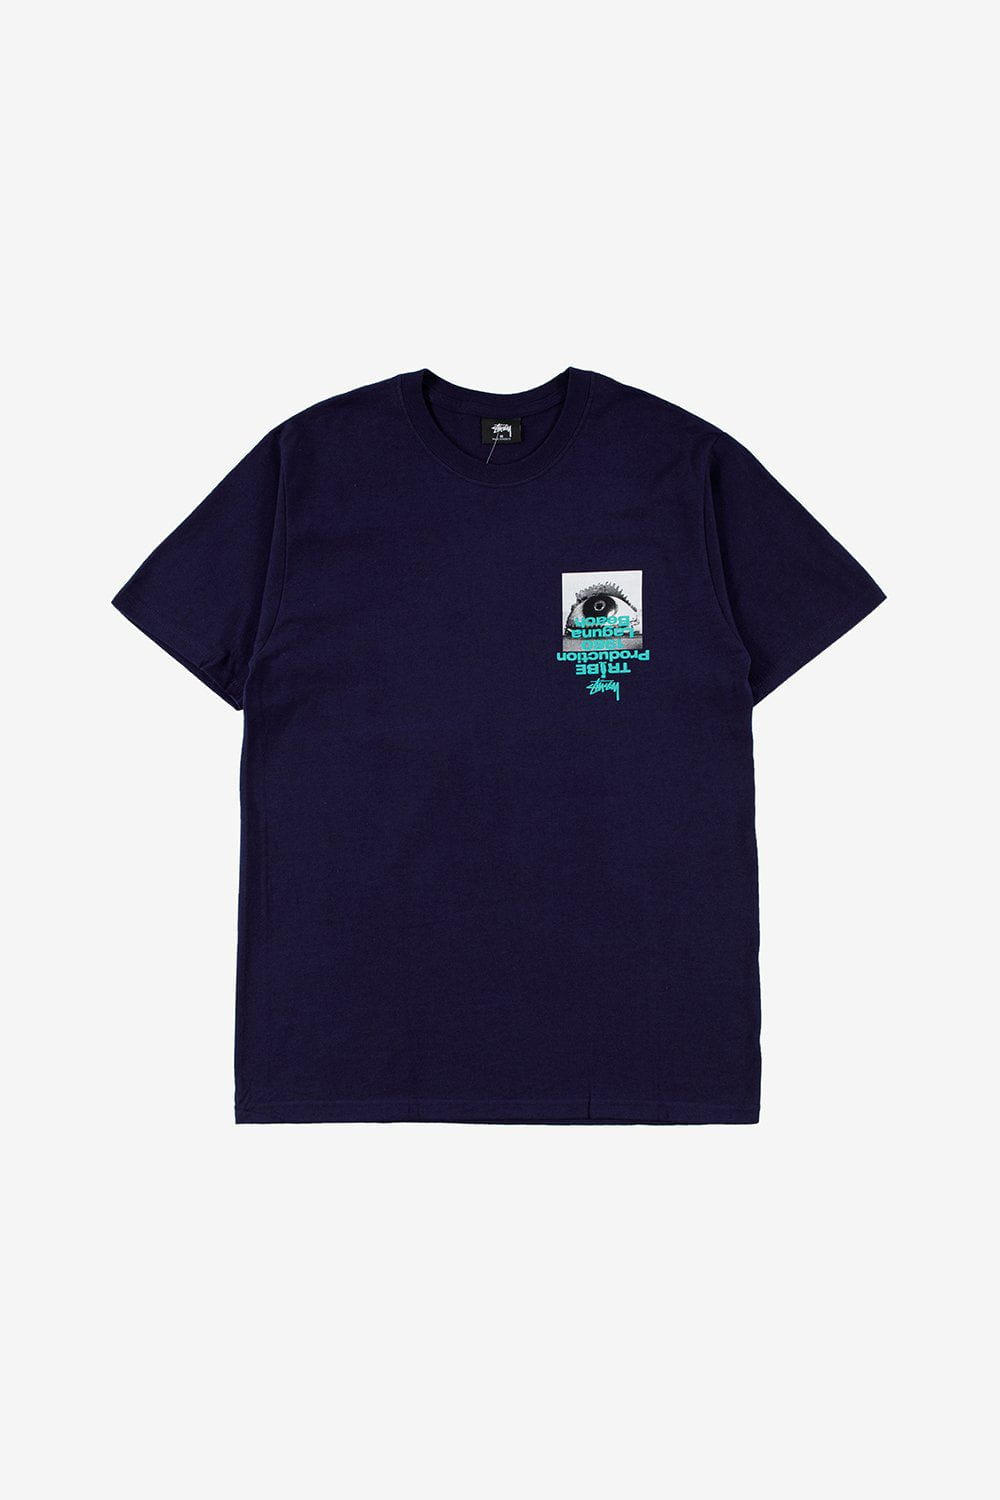 Stussy Apparel Tribe Tee